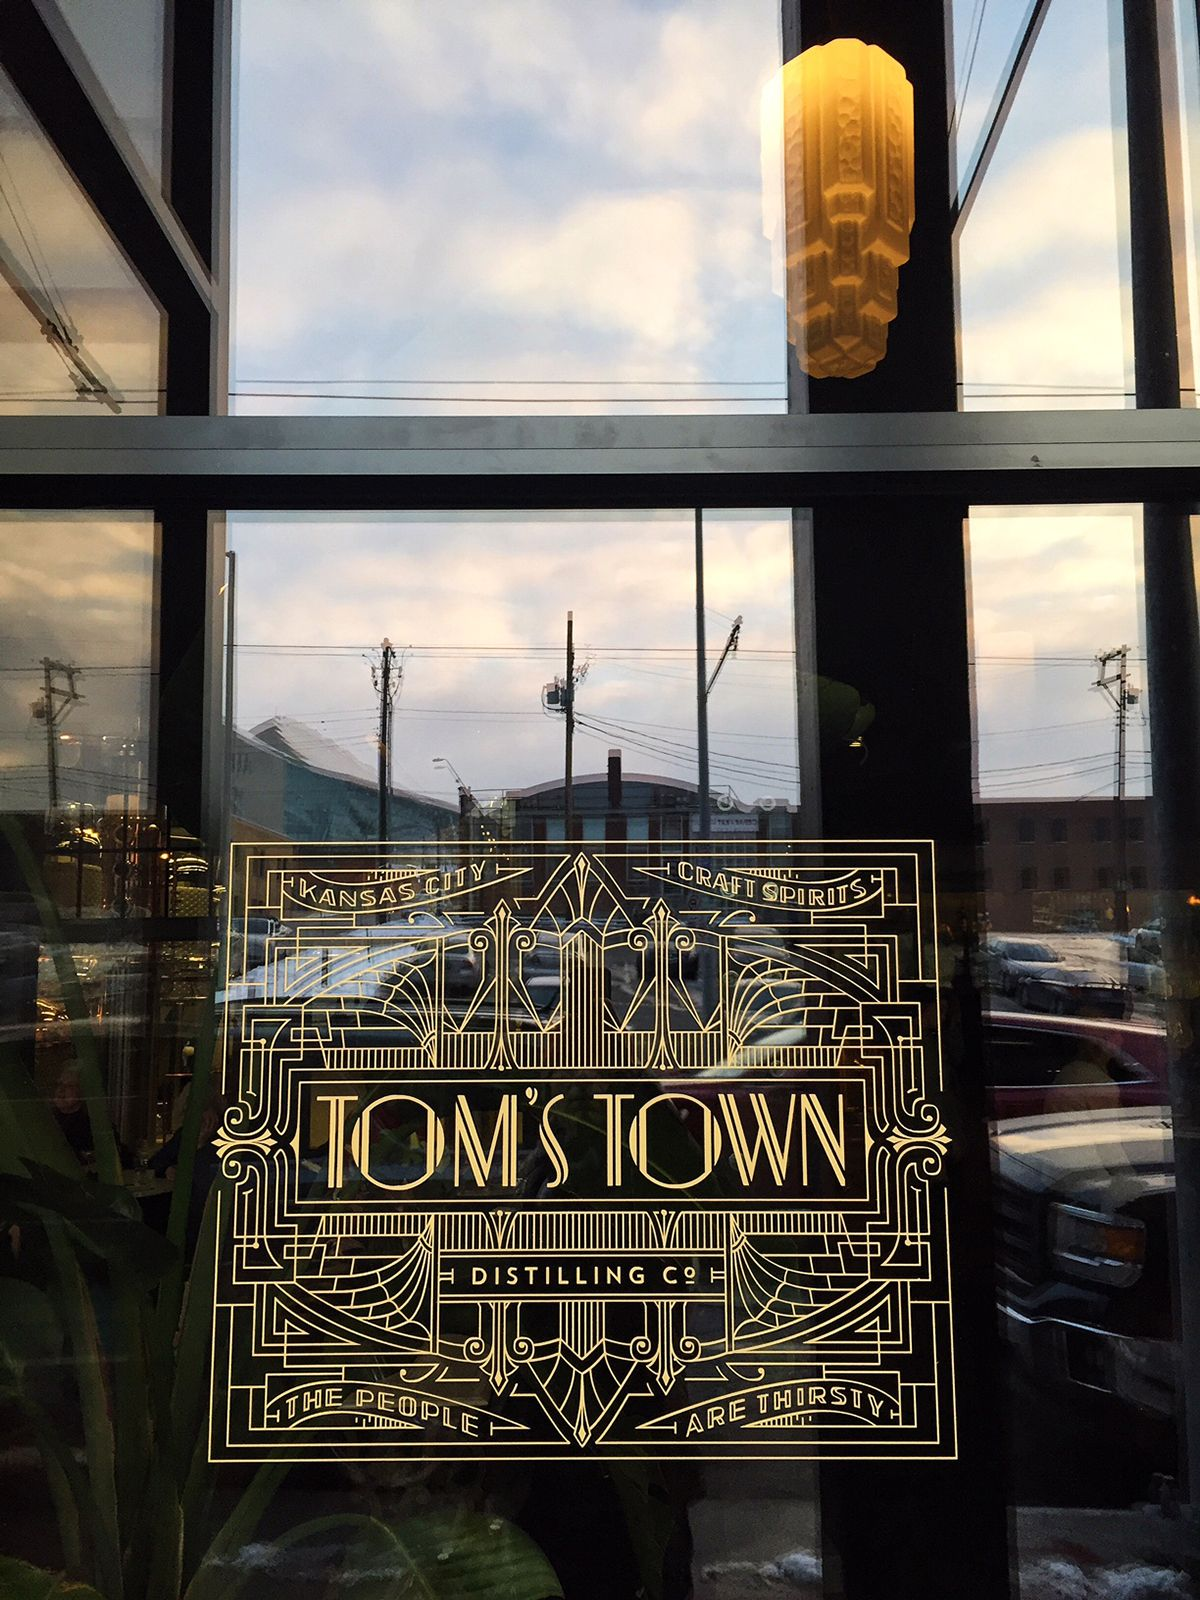 Tom's Town